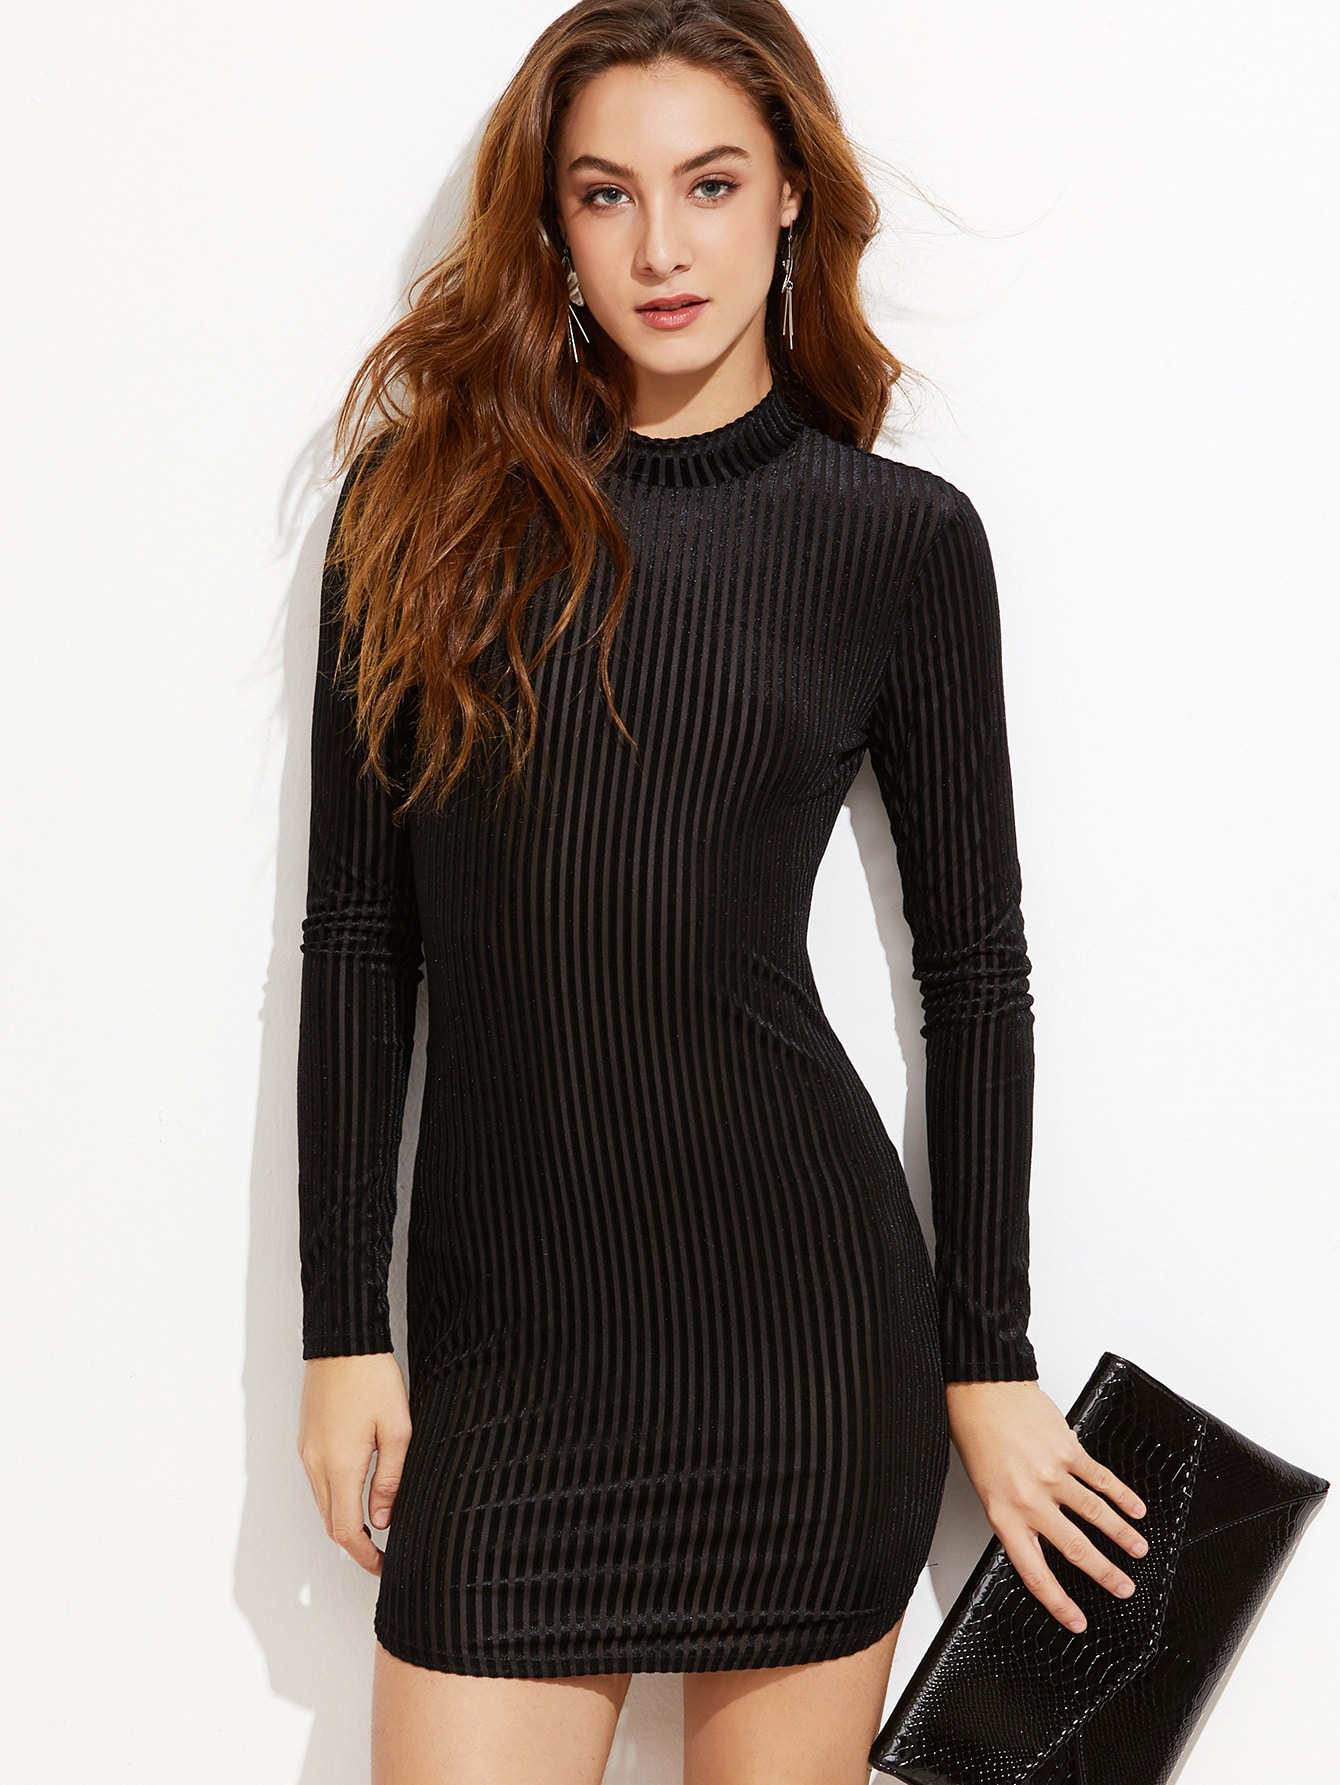 Black Mock Neck Keyhole Back Striped Velvet Bodycon DressBlack Mock Neck Keyhole Back Striped Velvet Bodycon Dress<br><br>color: Black<br>size: L,M,XS